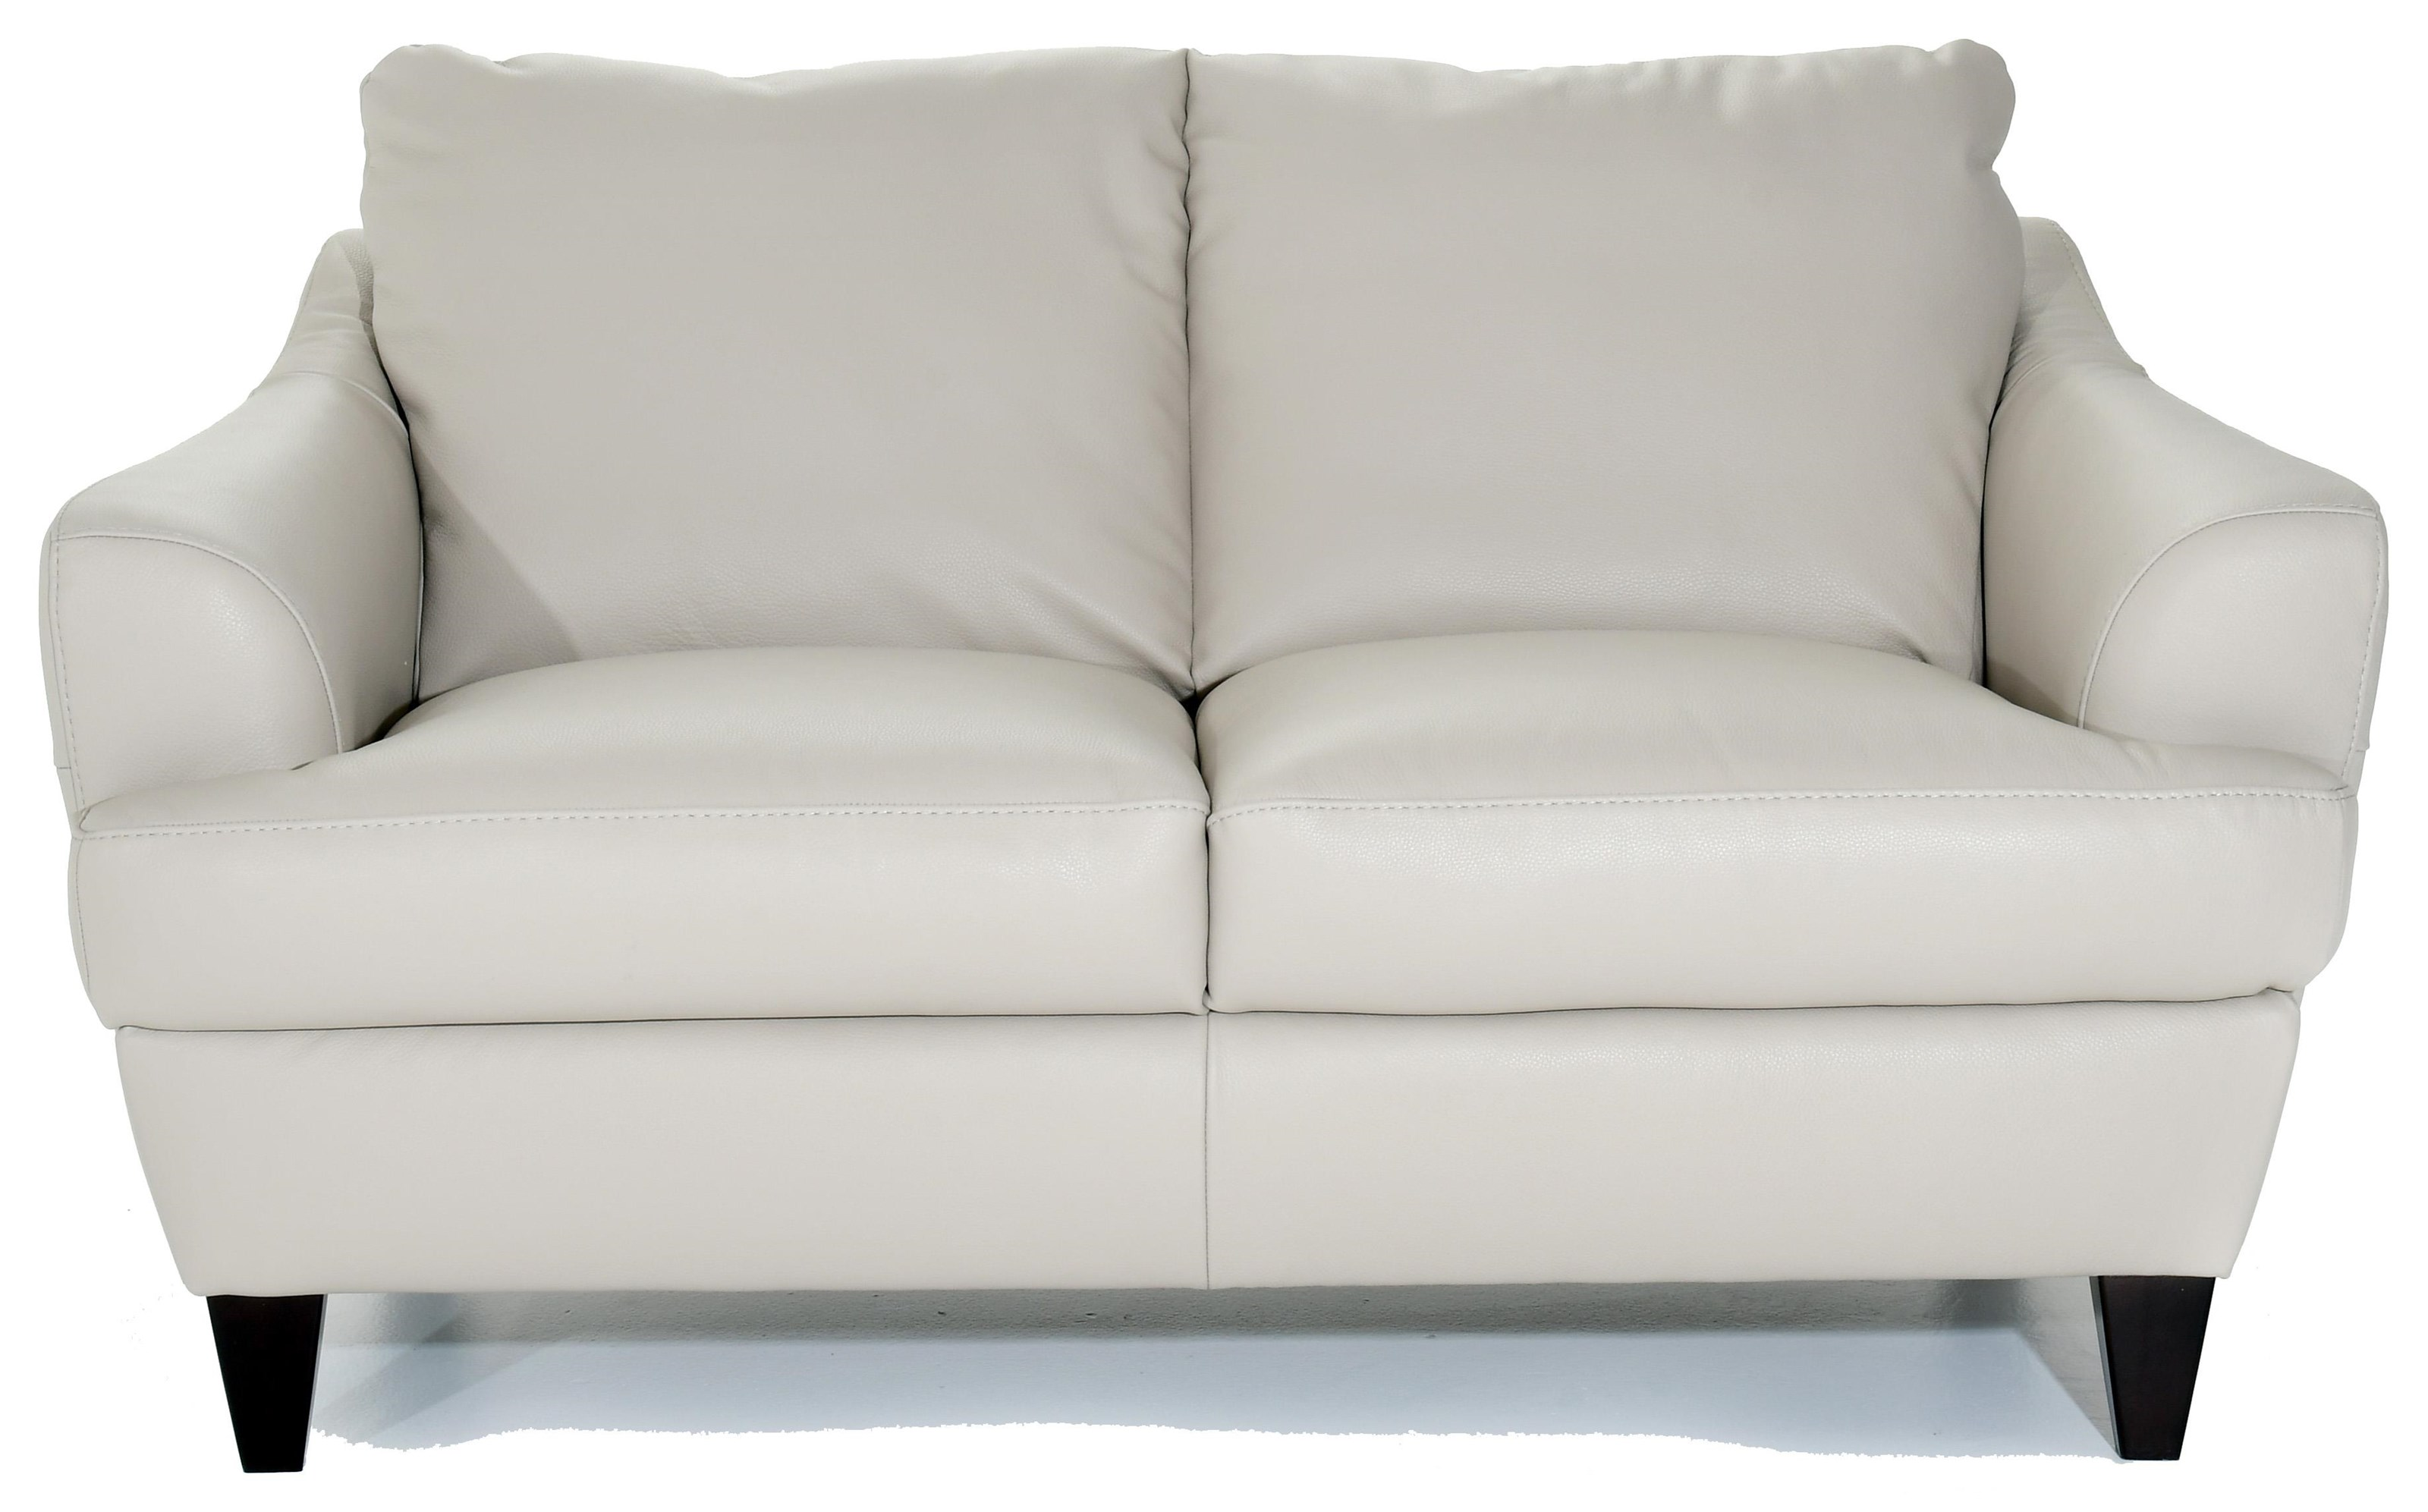 Contemporary Love Seat with Flared Arms